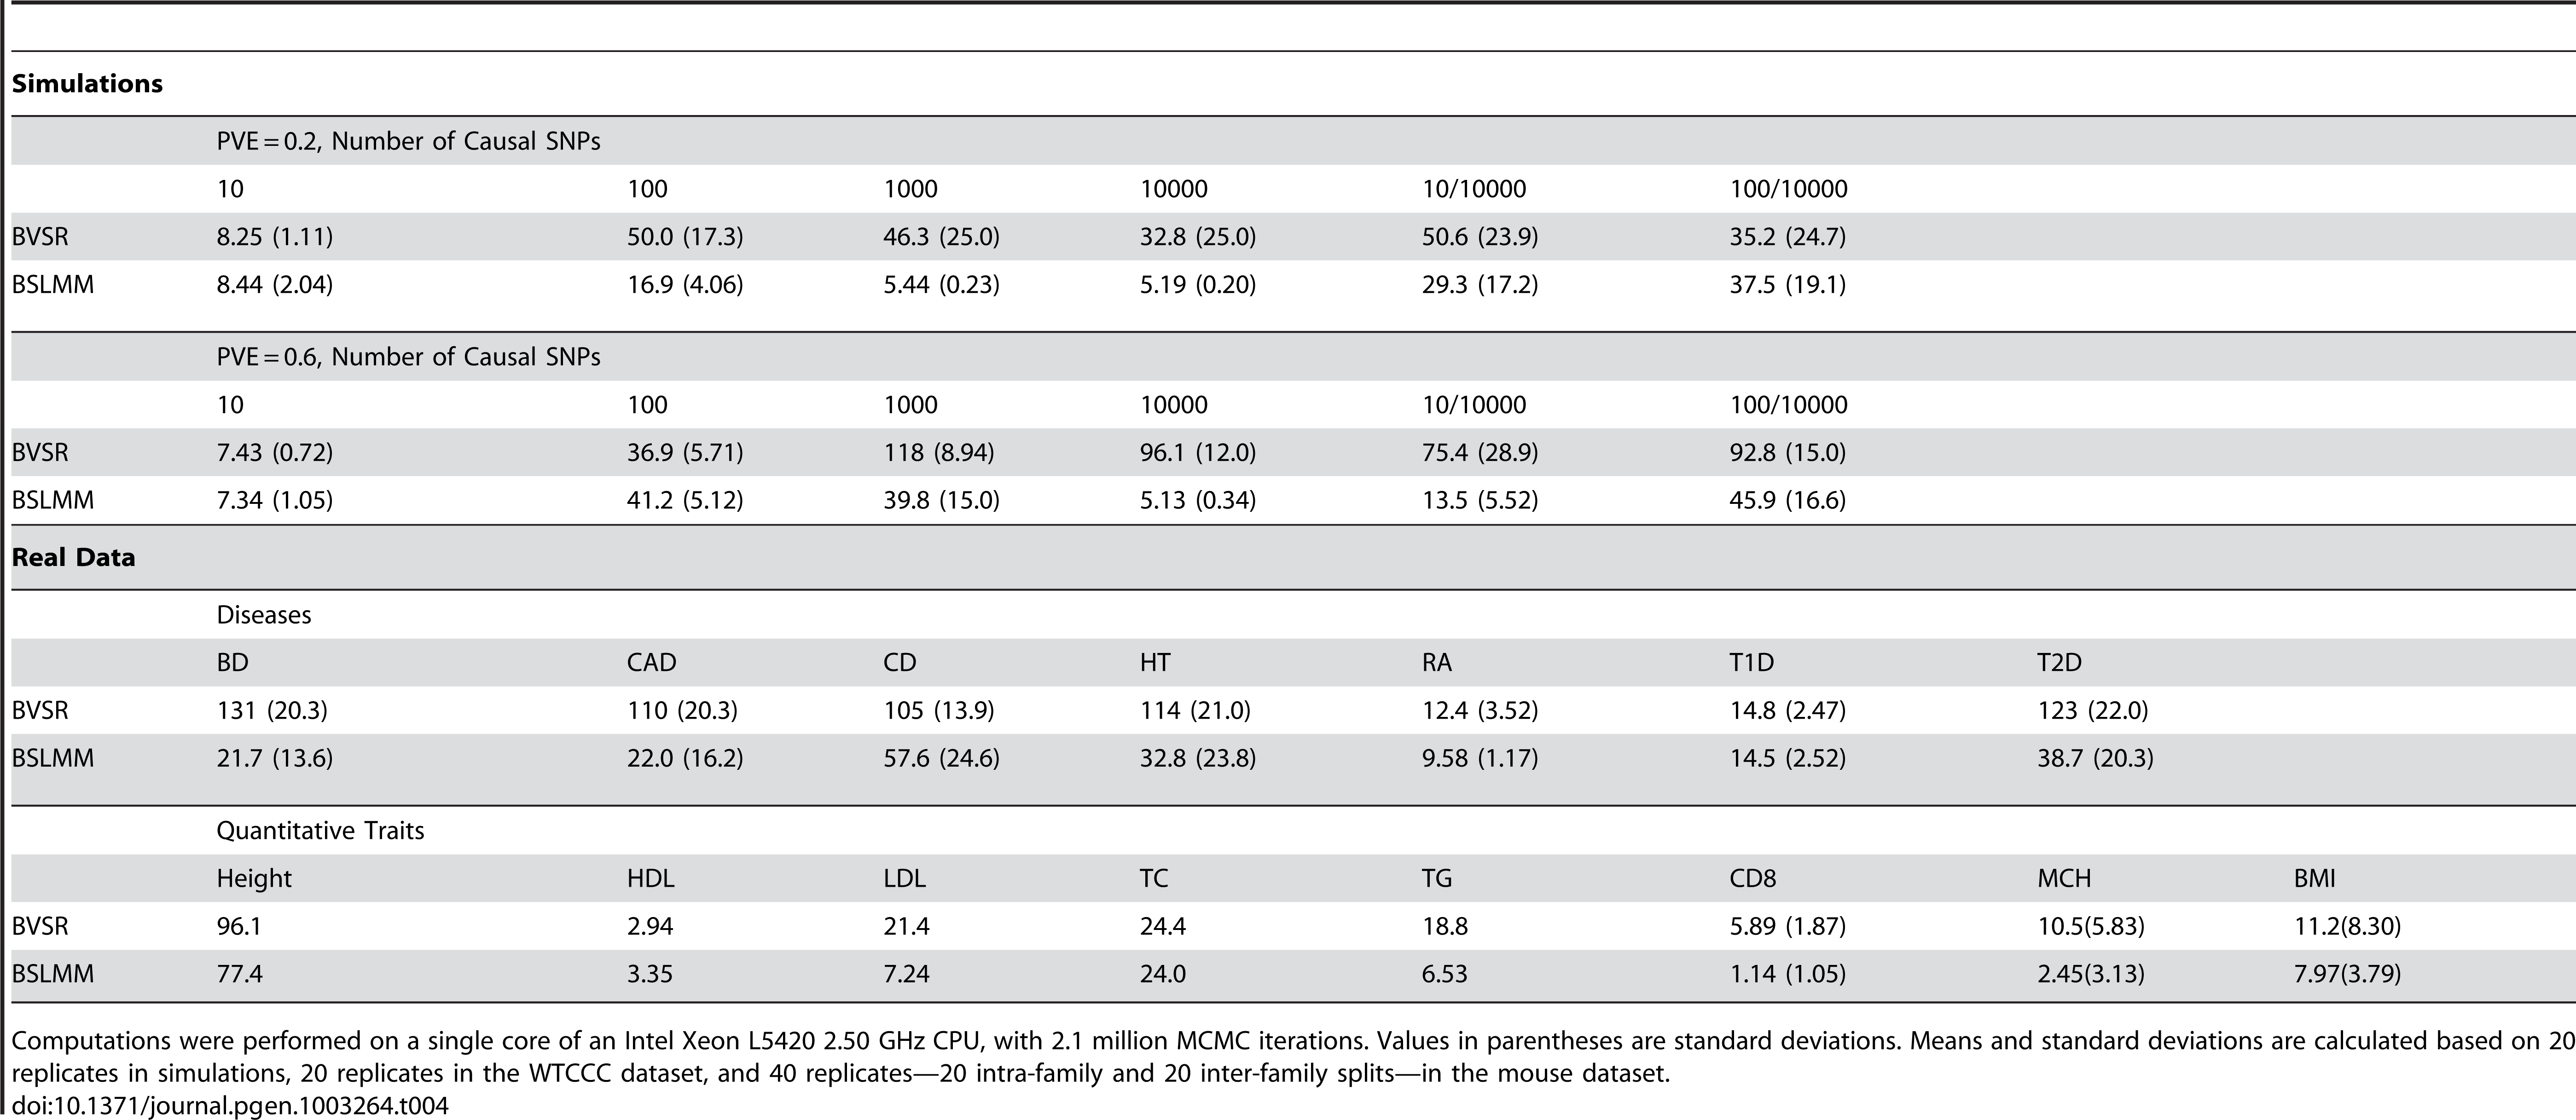 Mean computation time, in hours, of BVSR and BSLMM in all examples used in this study.